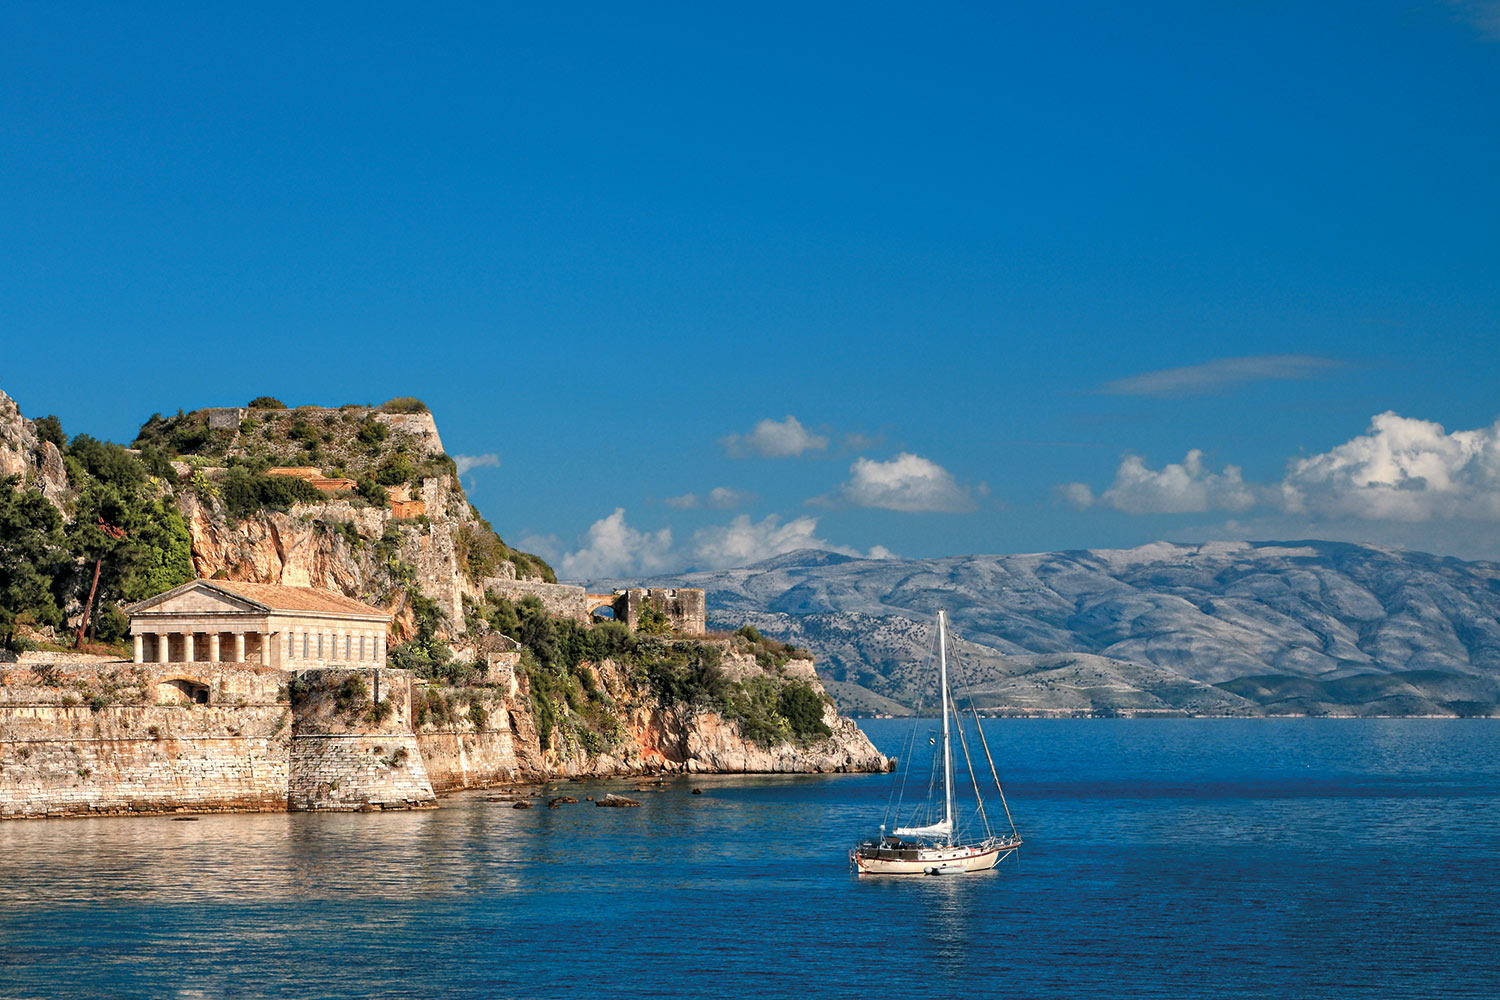 Ionian Islands are the treasure of Mediterranean